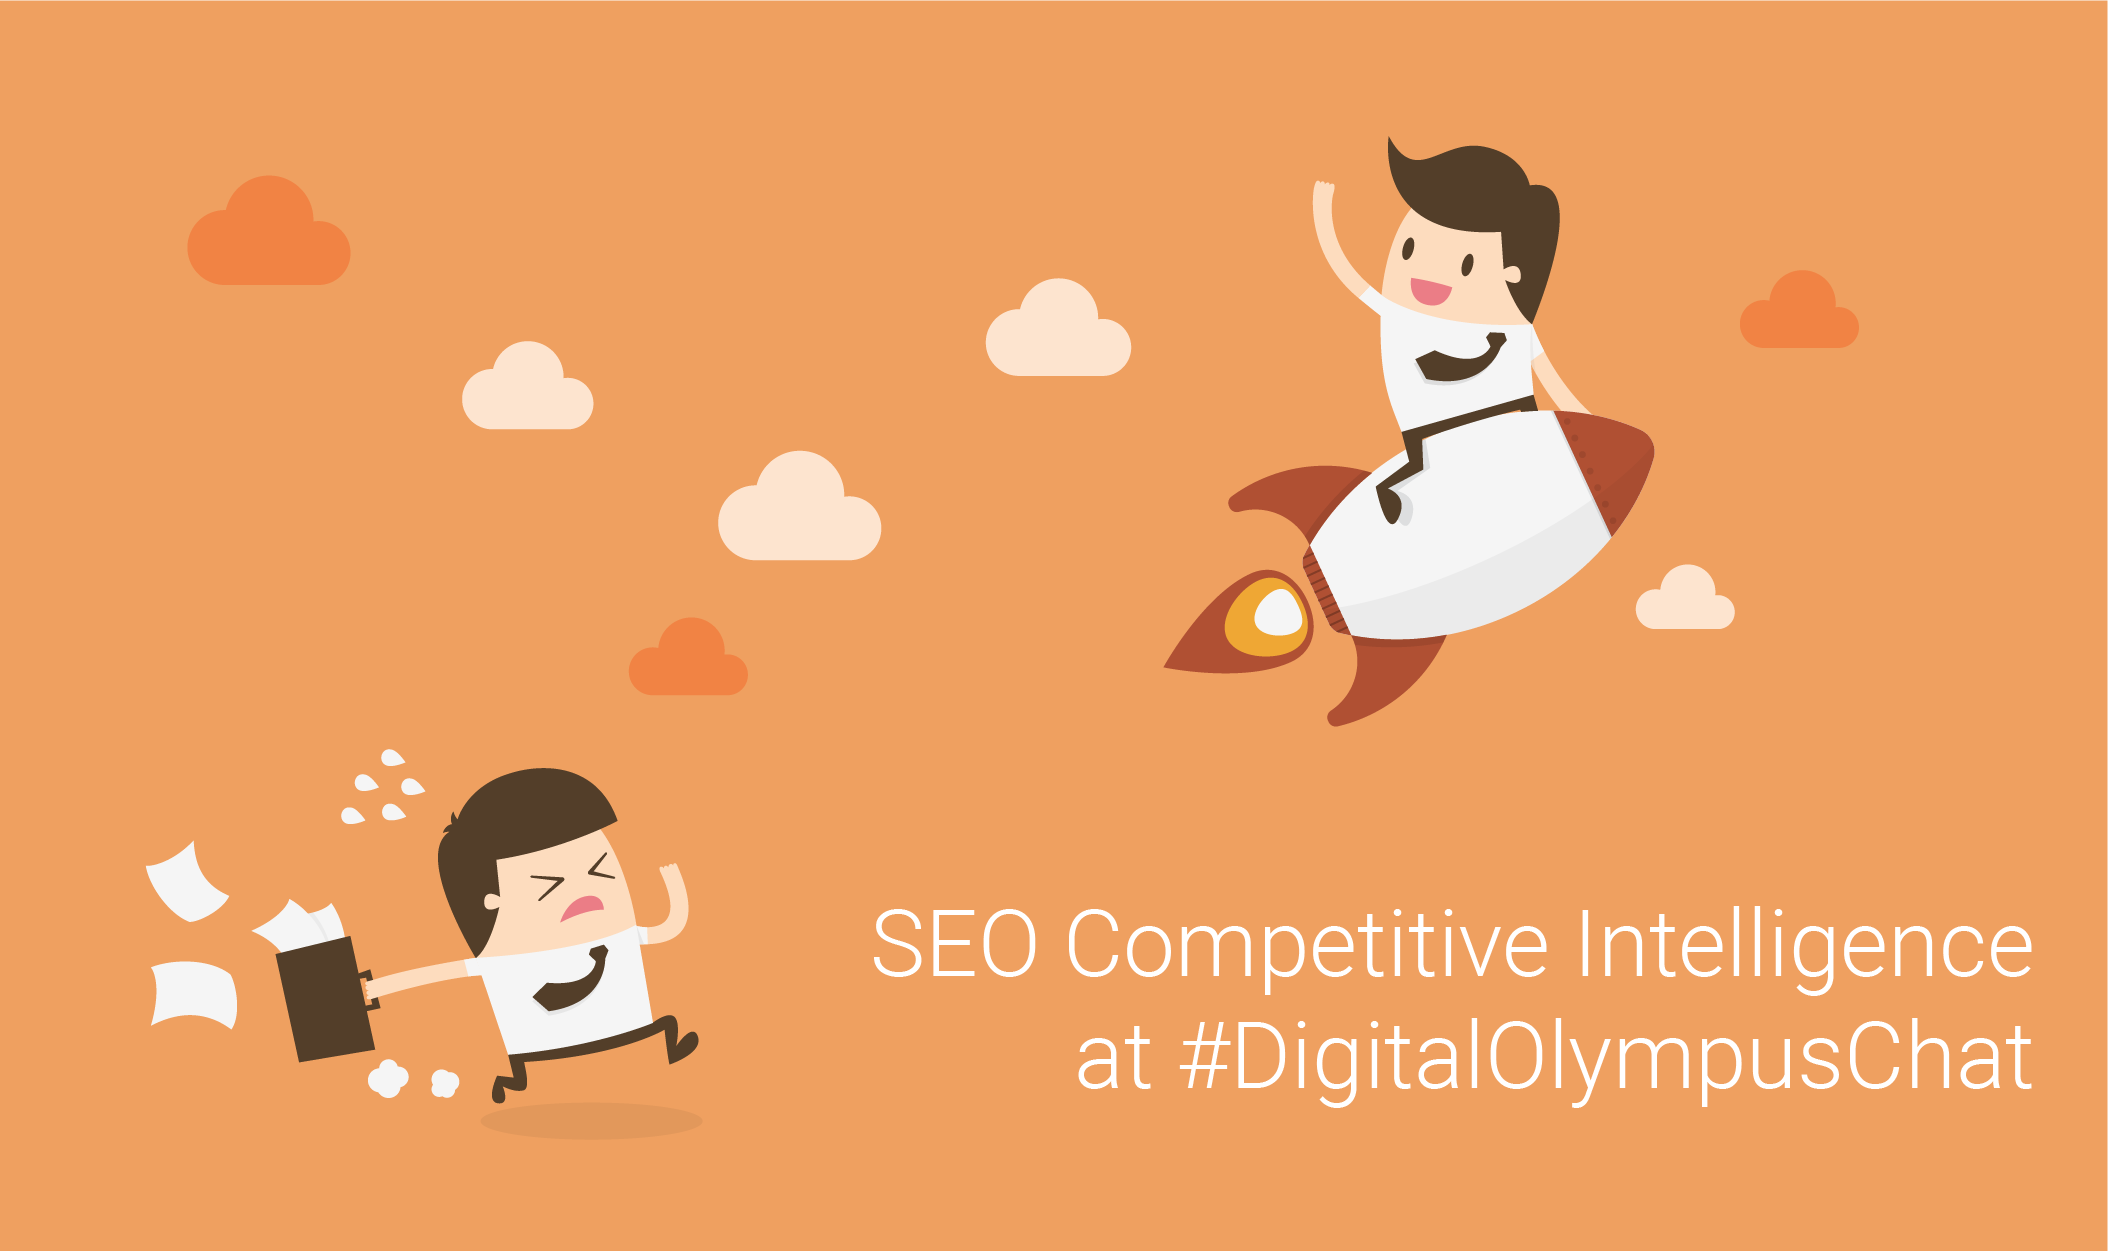 SEO Competitive Intelligence